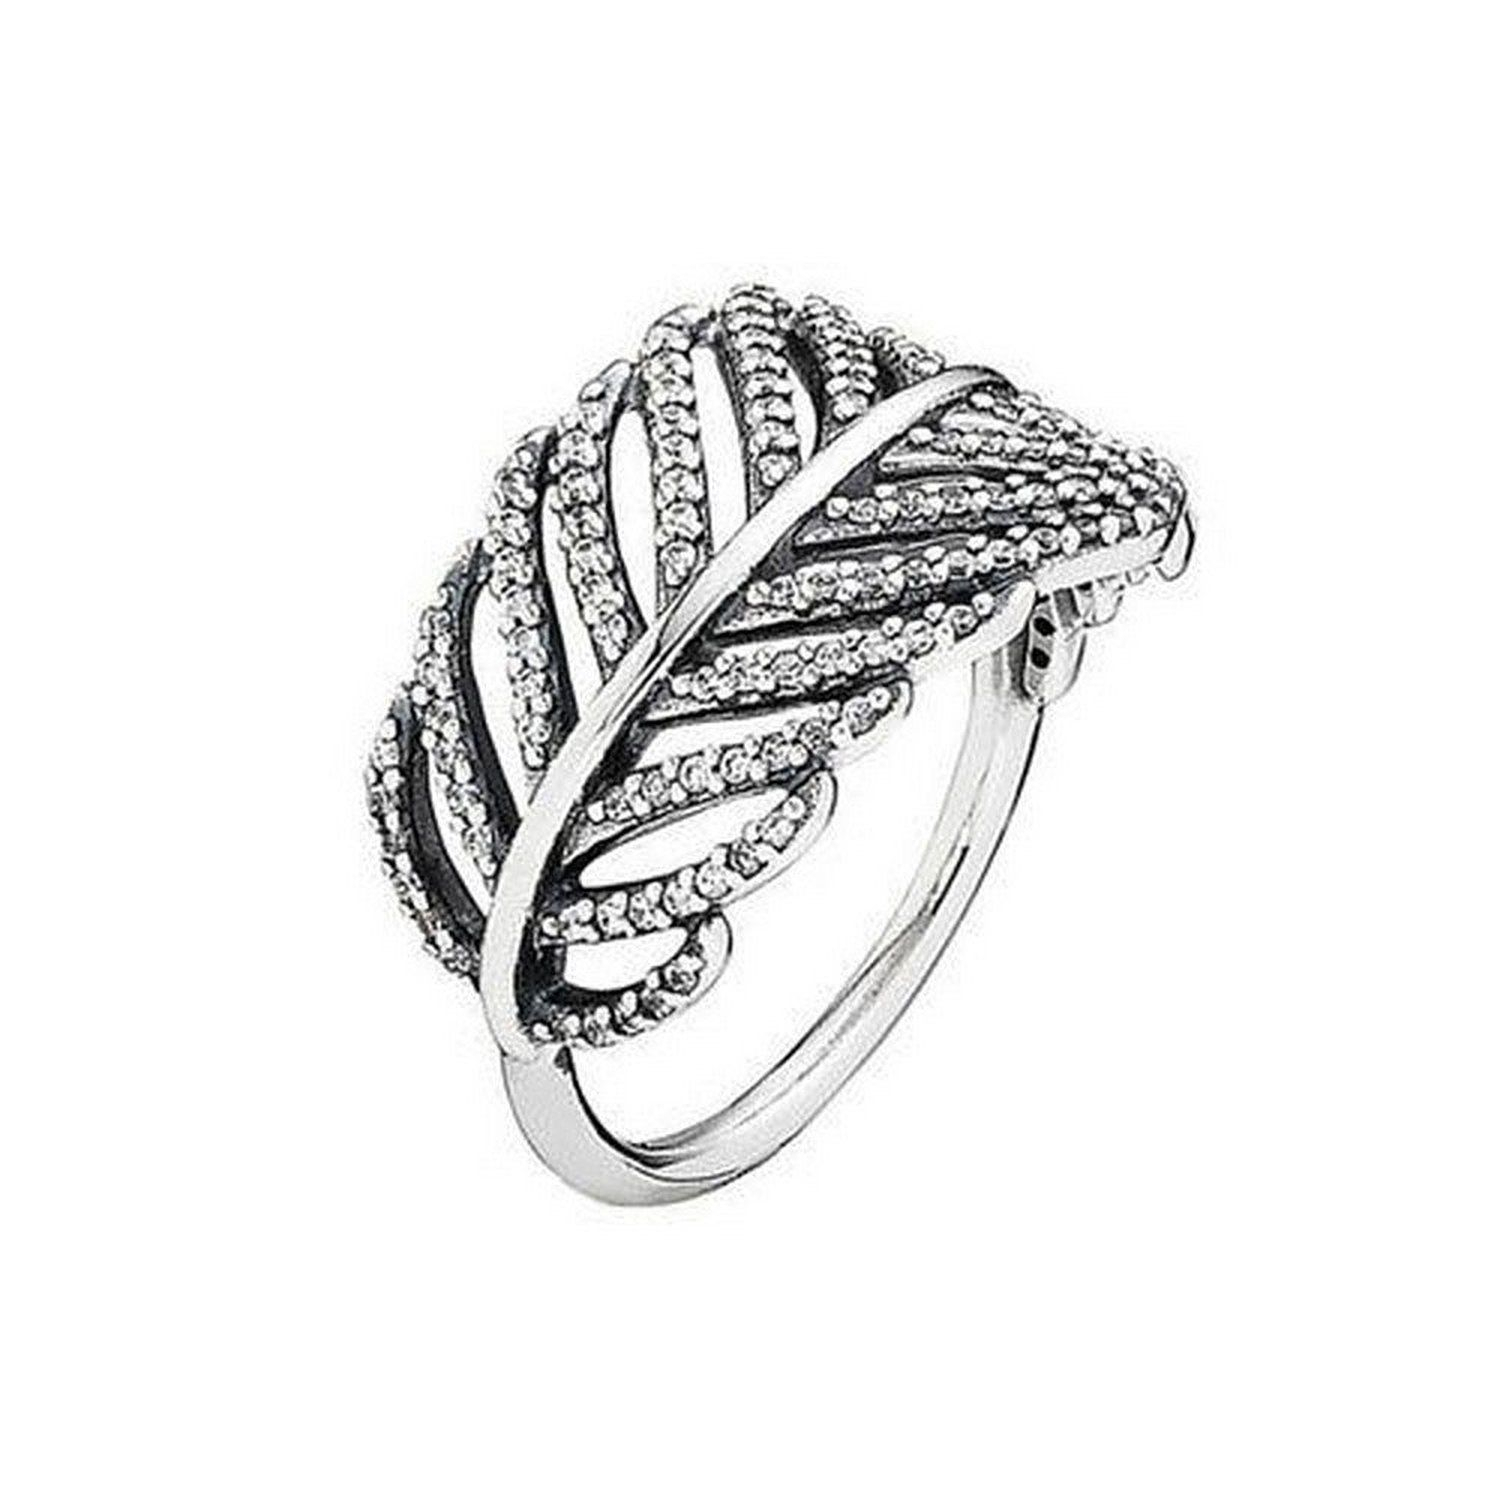 Authentic S925 Ale Pandora Light As A Feather Ring #190886cz Size 7 / 54 W/ Box With Most Popular Shimmering Feather Rings (View 9 of 25)